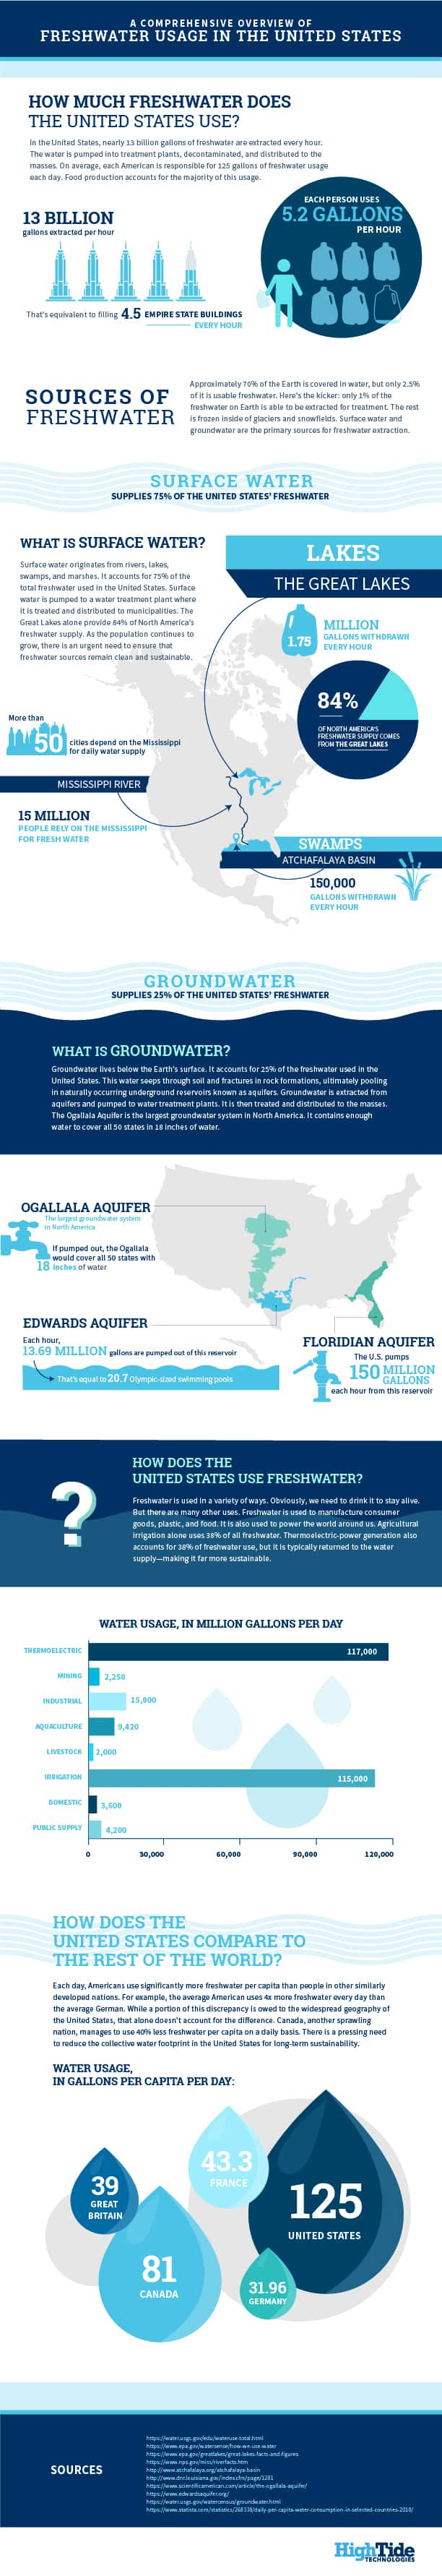 Overview of Freshwater Usage in the United States Infographic